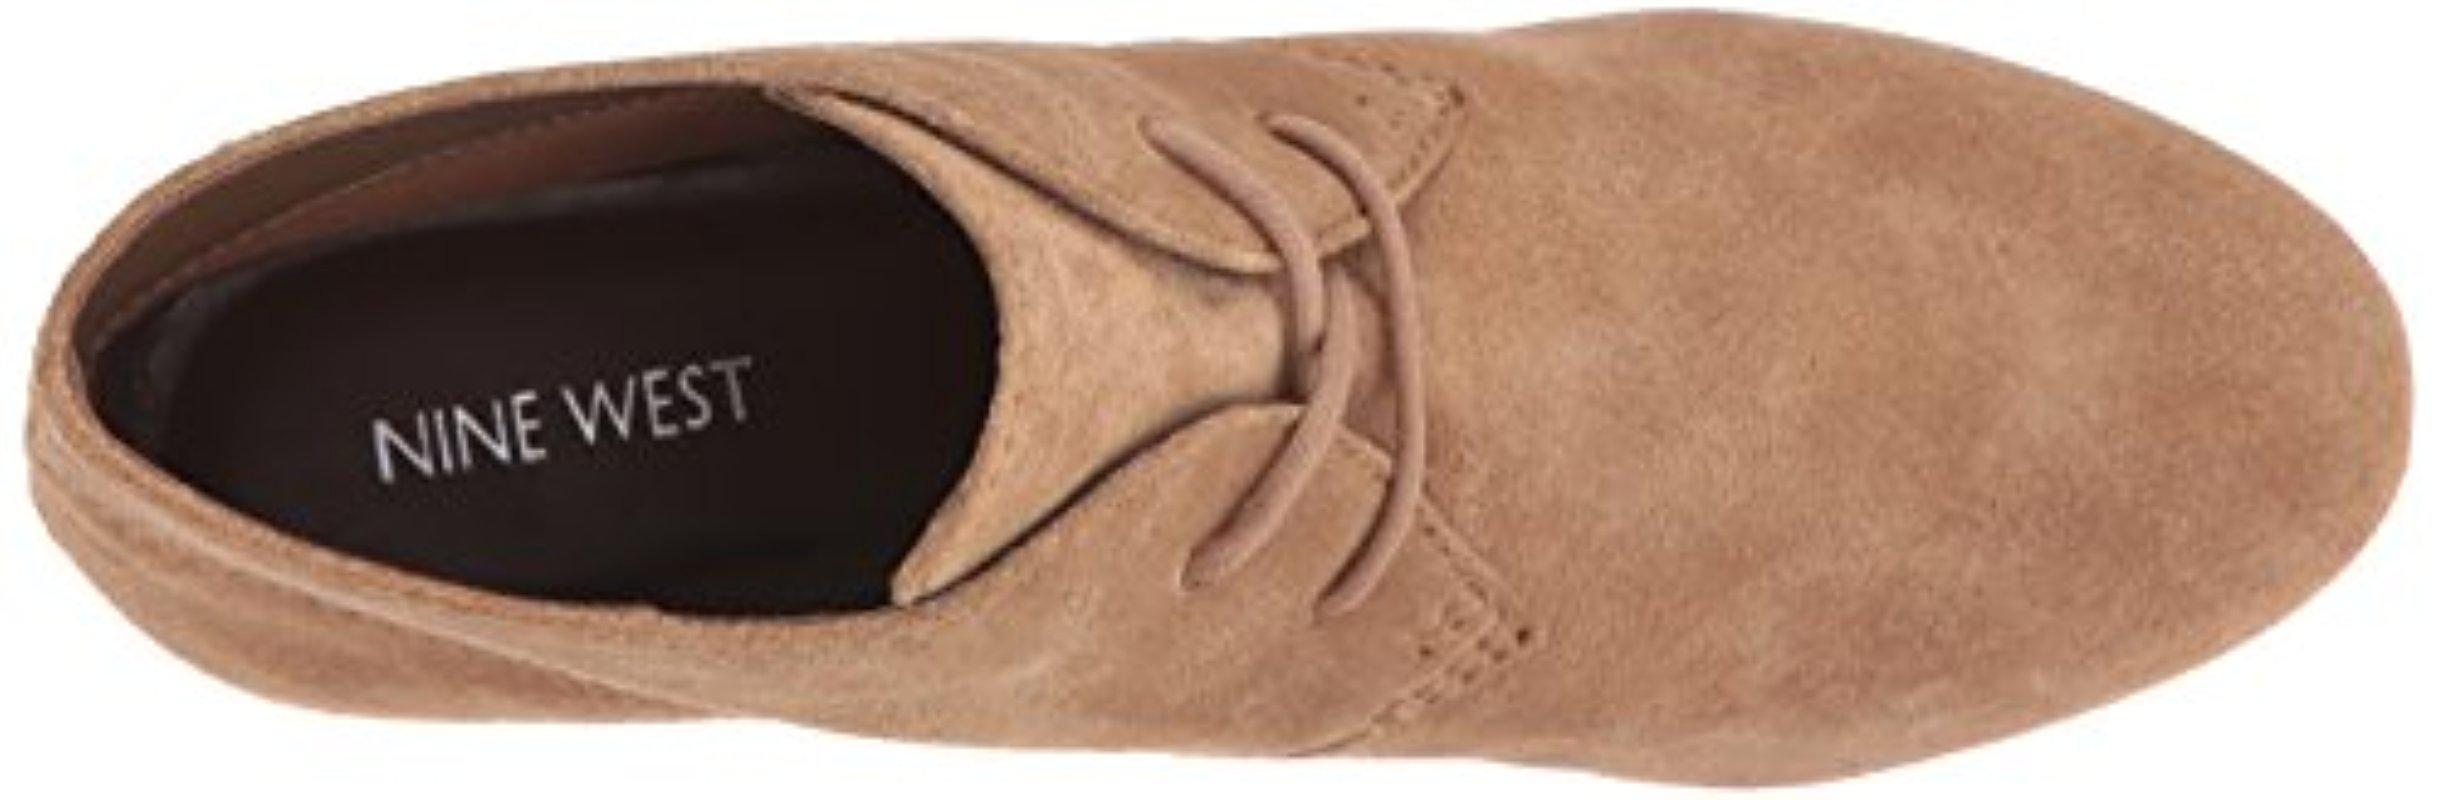 d1509a19d2f0 Nine West - Natural Joanis Suede Boot - Lyst. View fullscreen